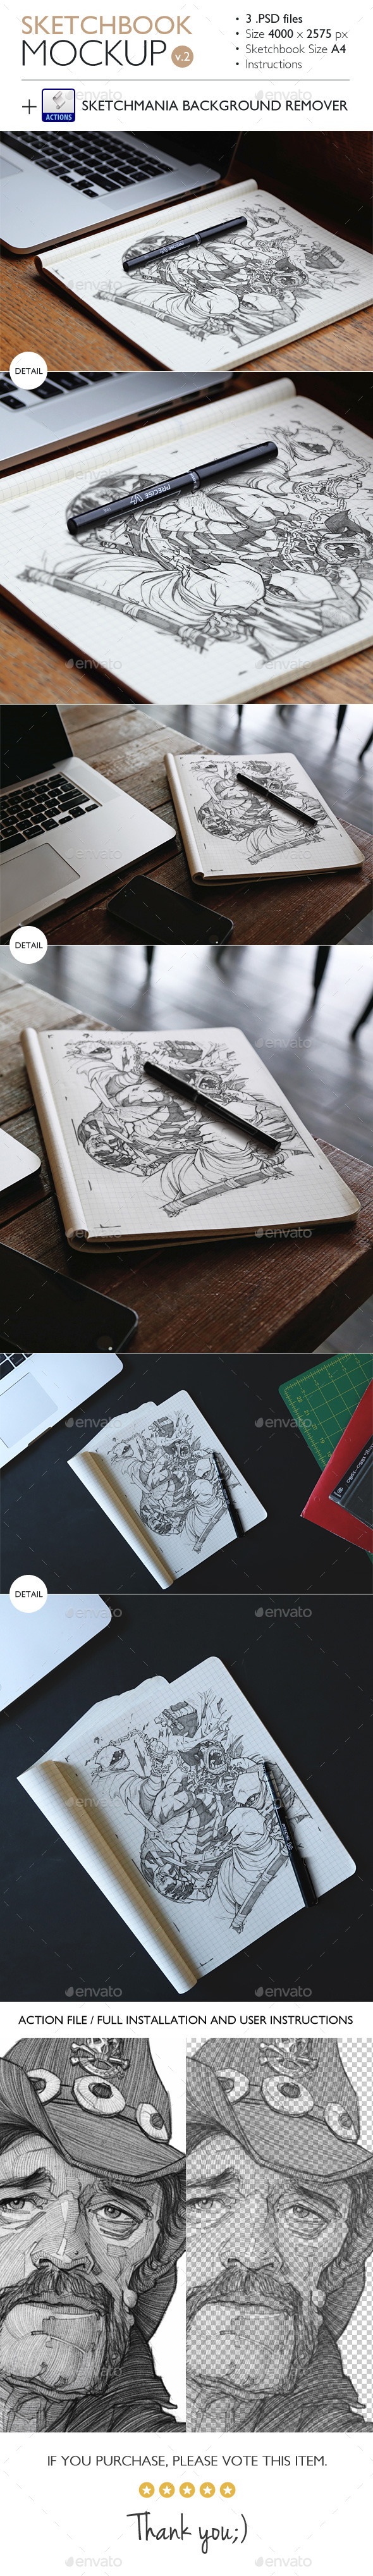 GraphicRiver Sketchbook Mockup v.2 10985251